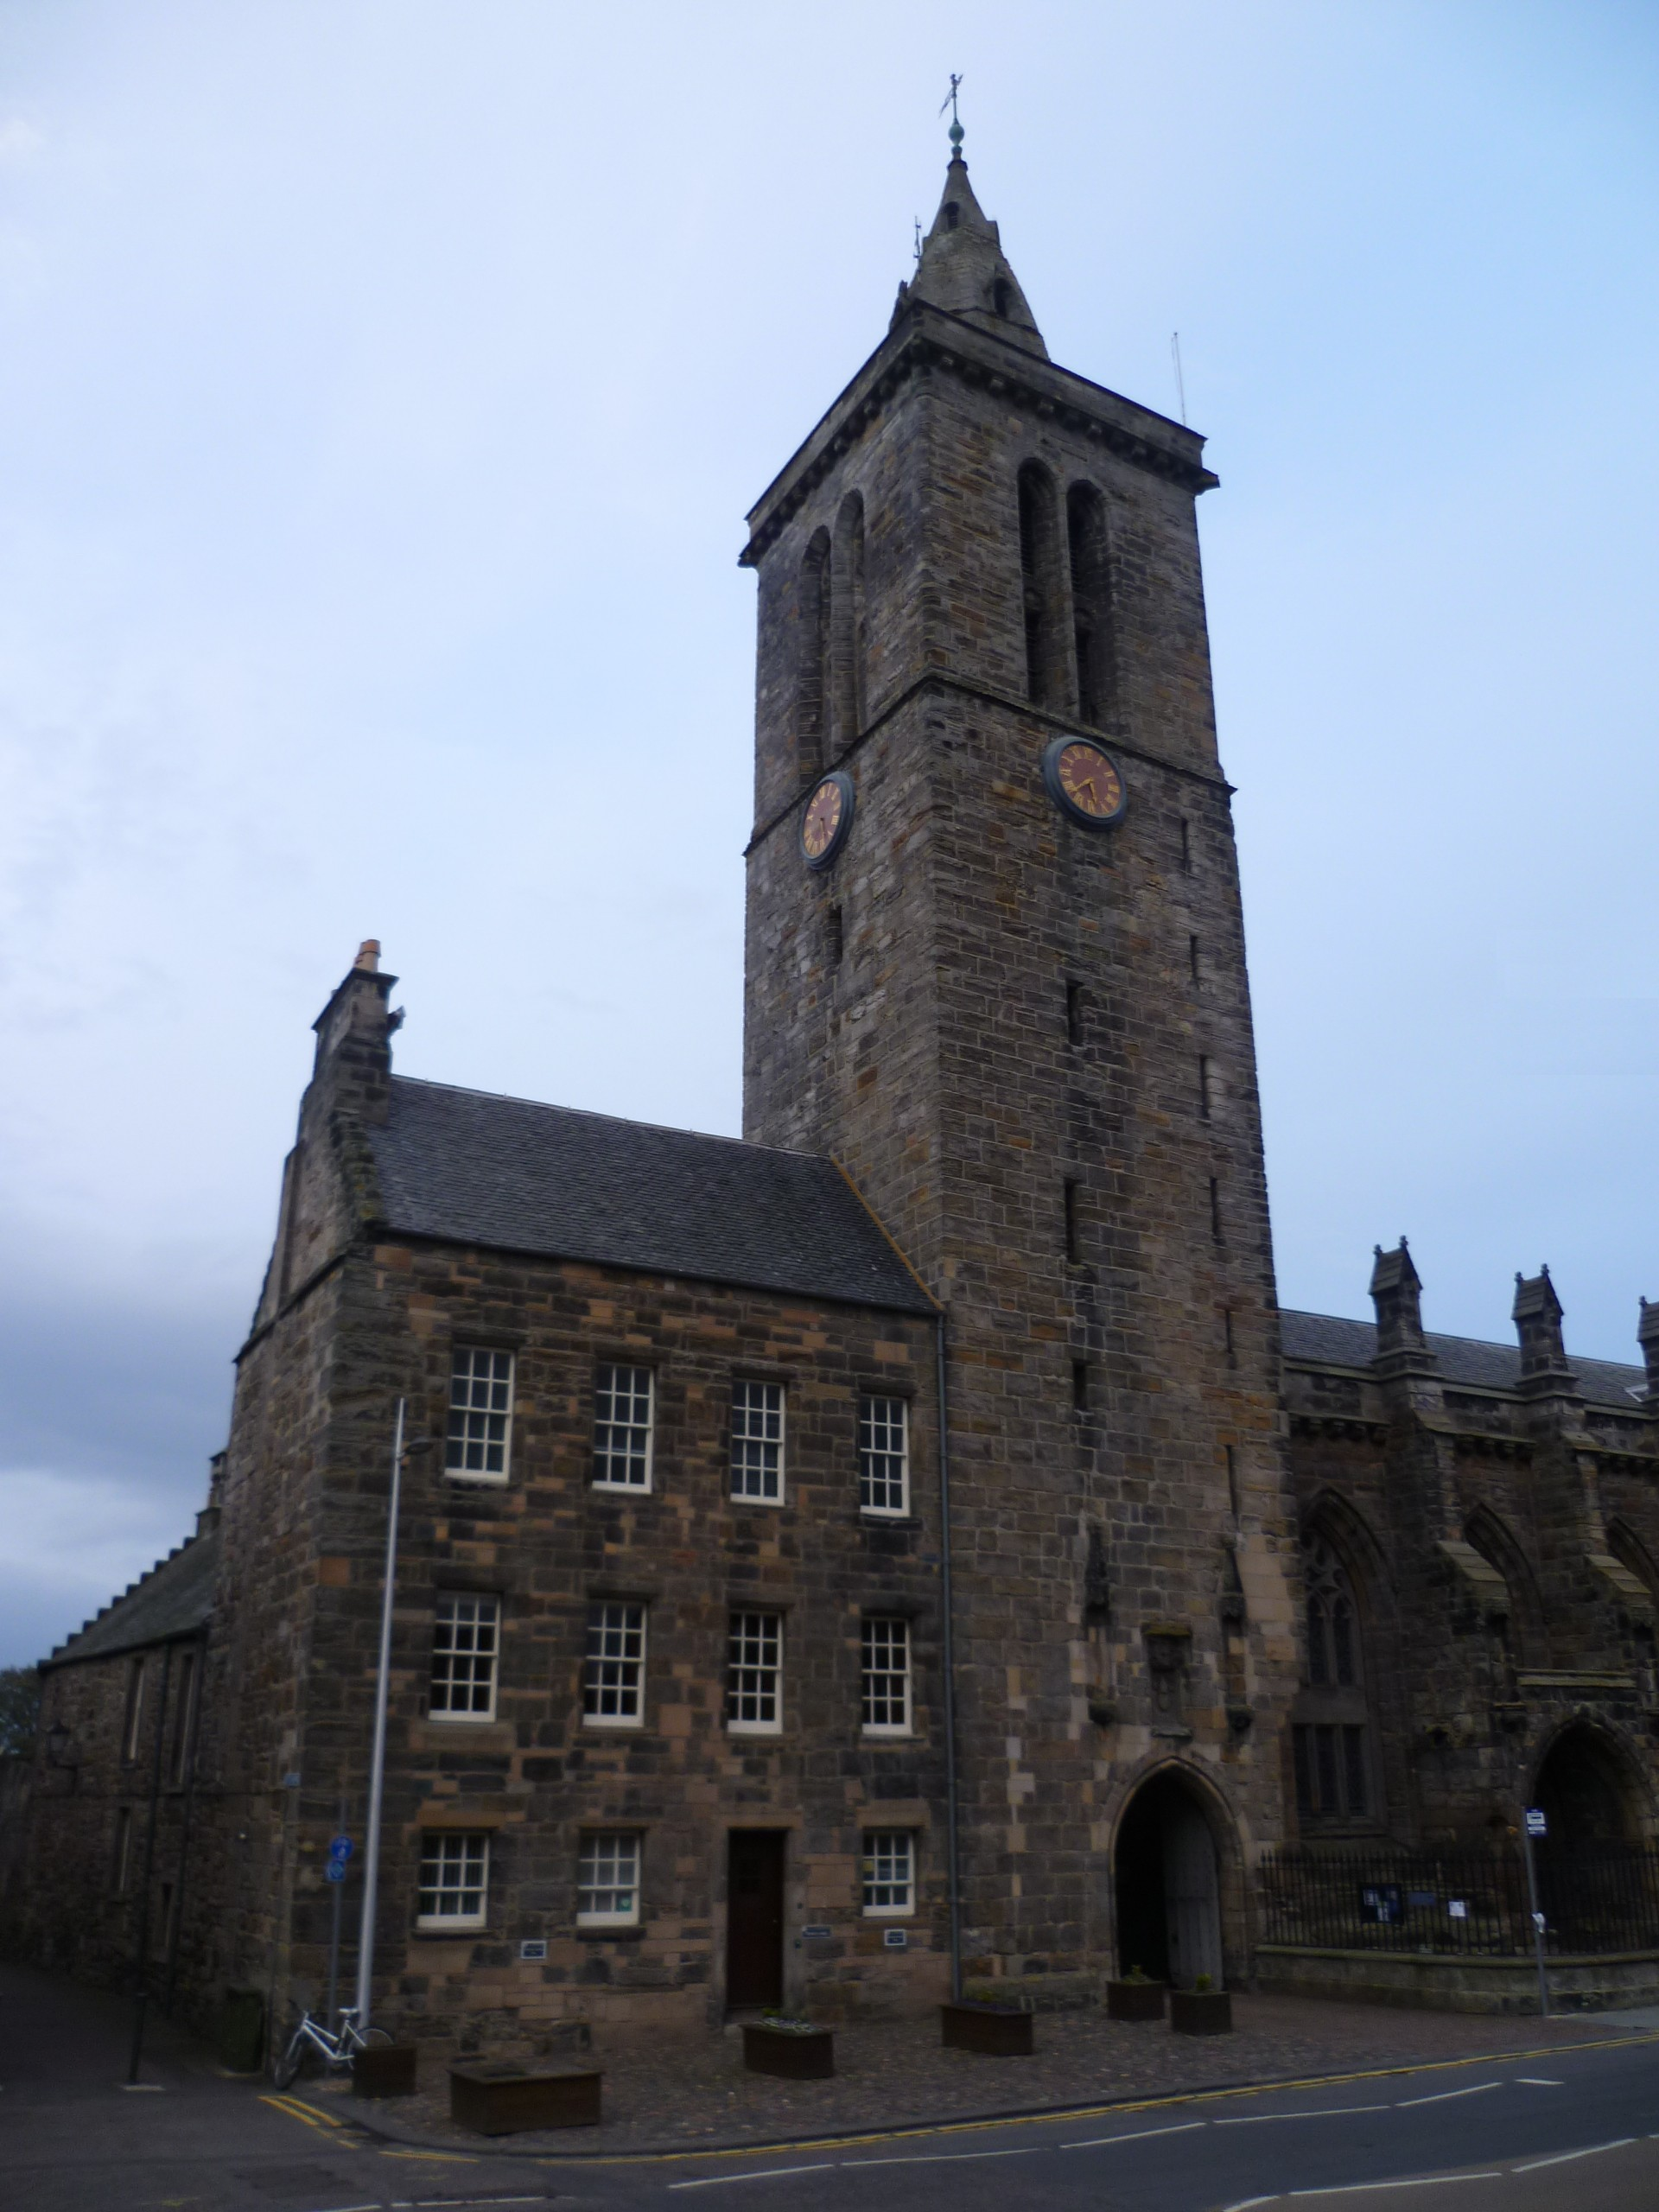 Tower Of St. Salvator's College,